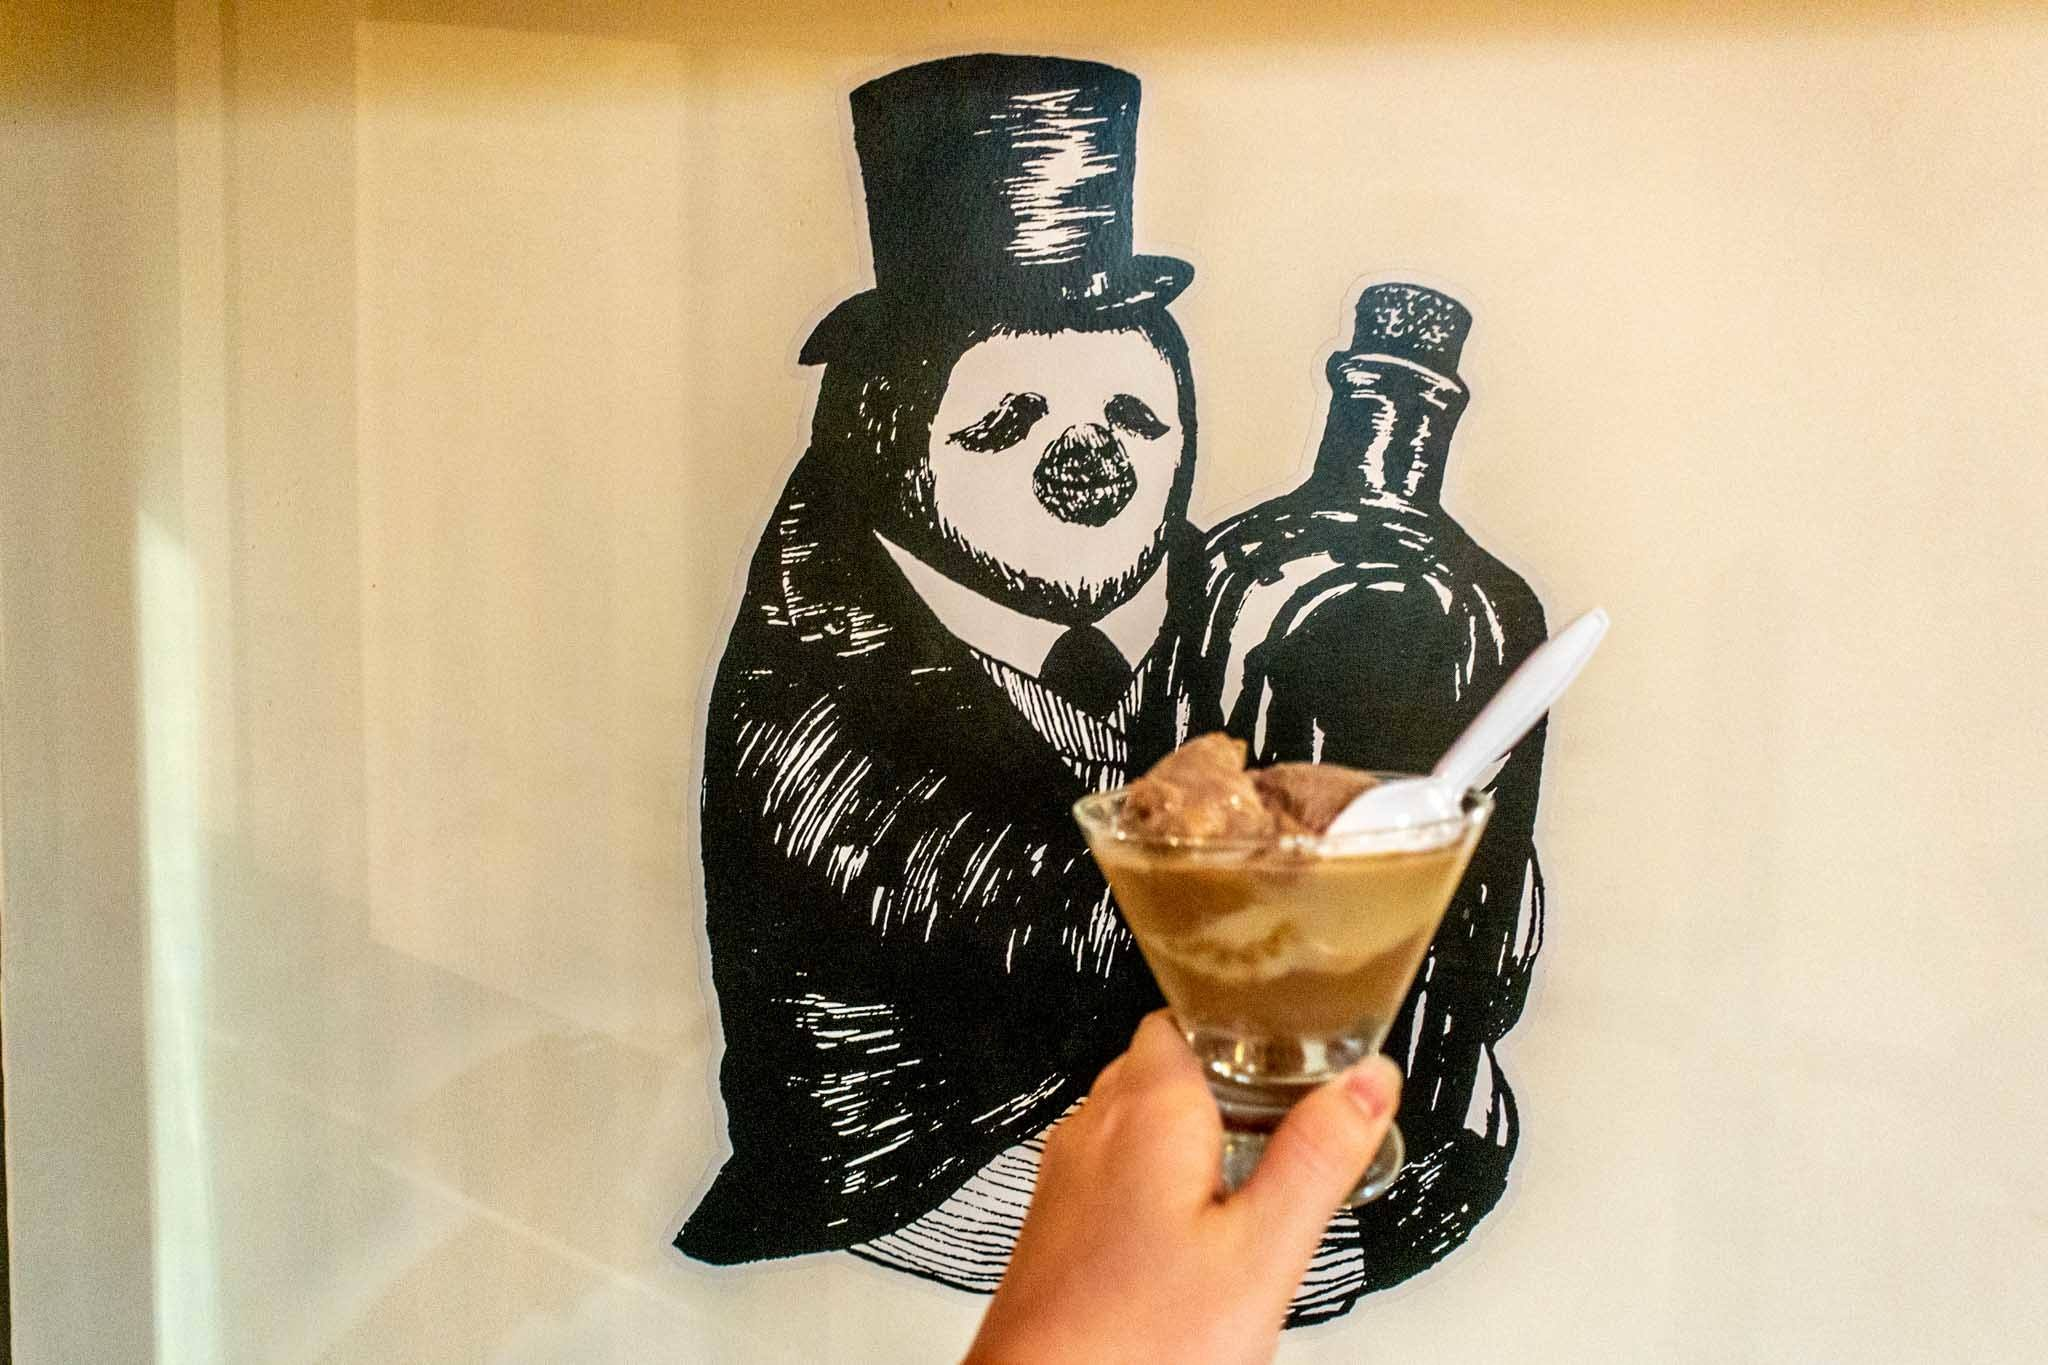 Dish of ice cream in front of a drawing of a penguin holding a bottle